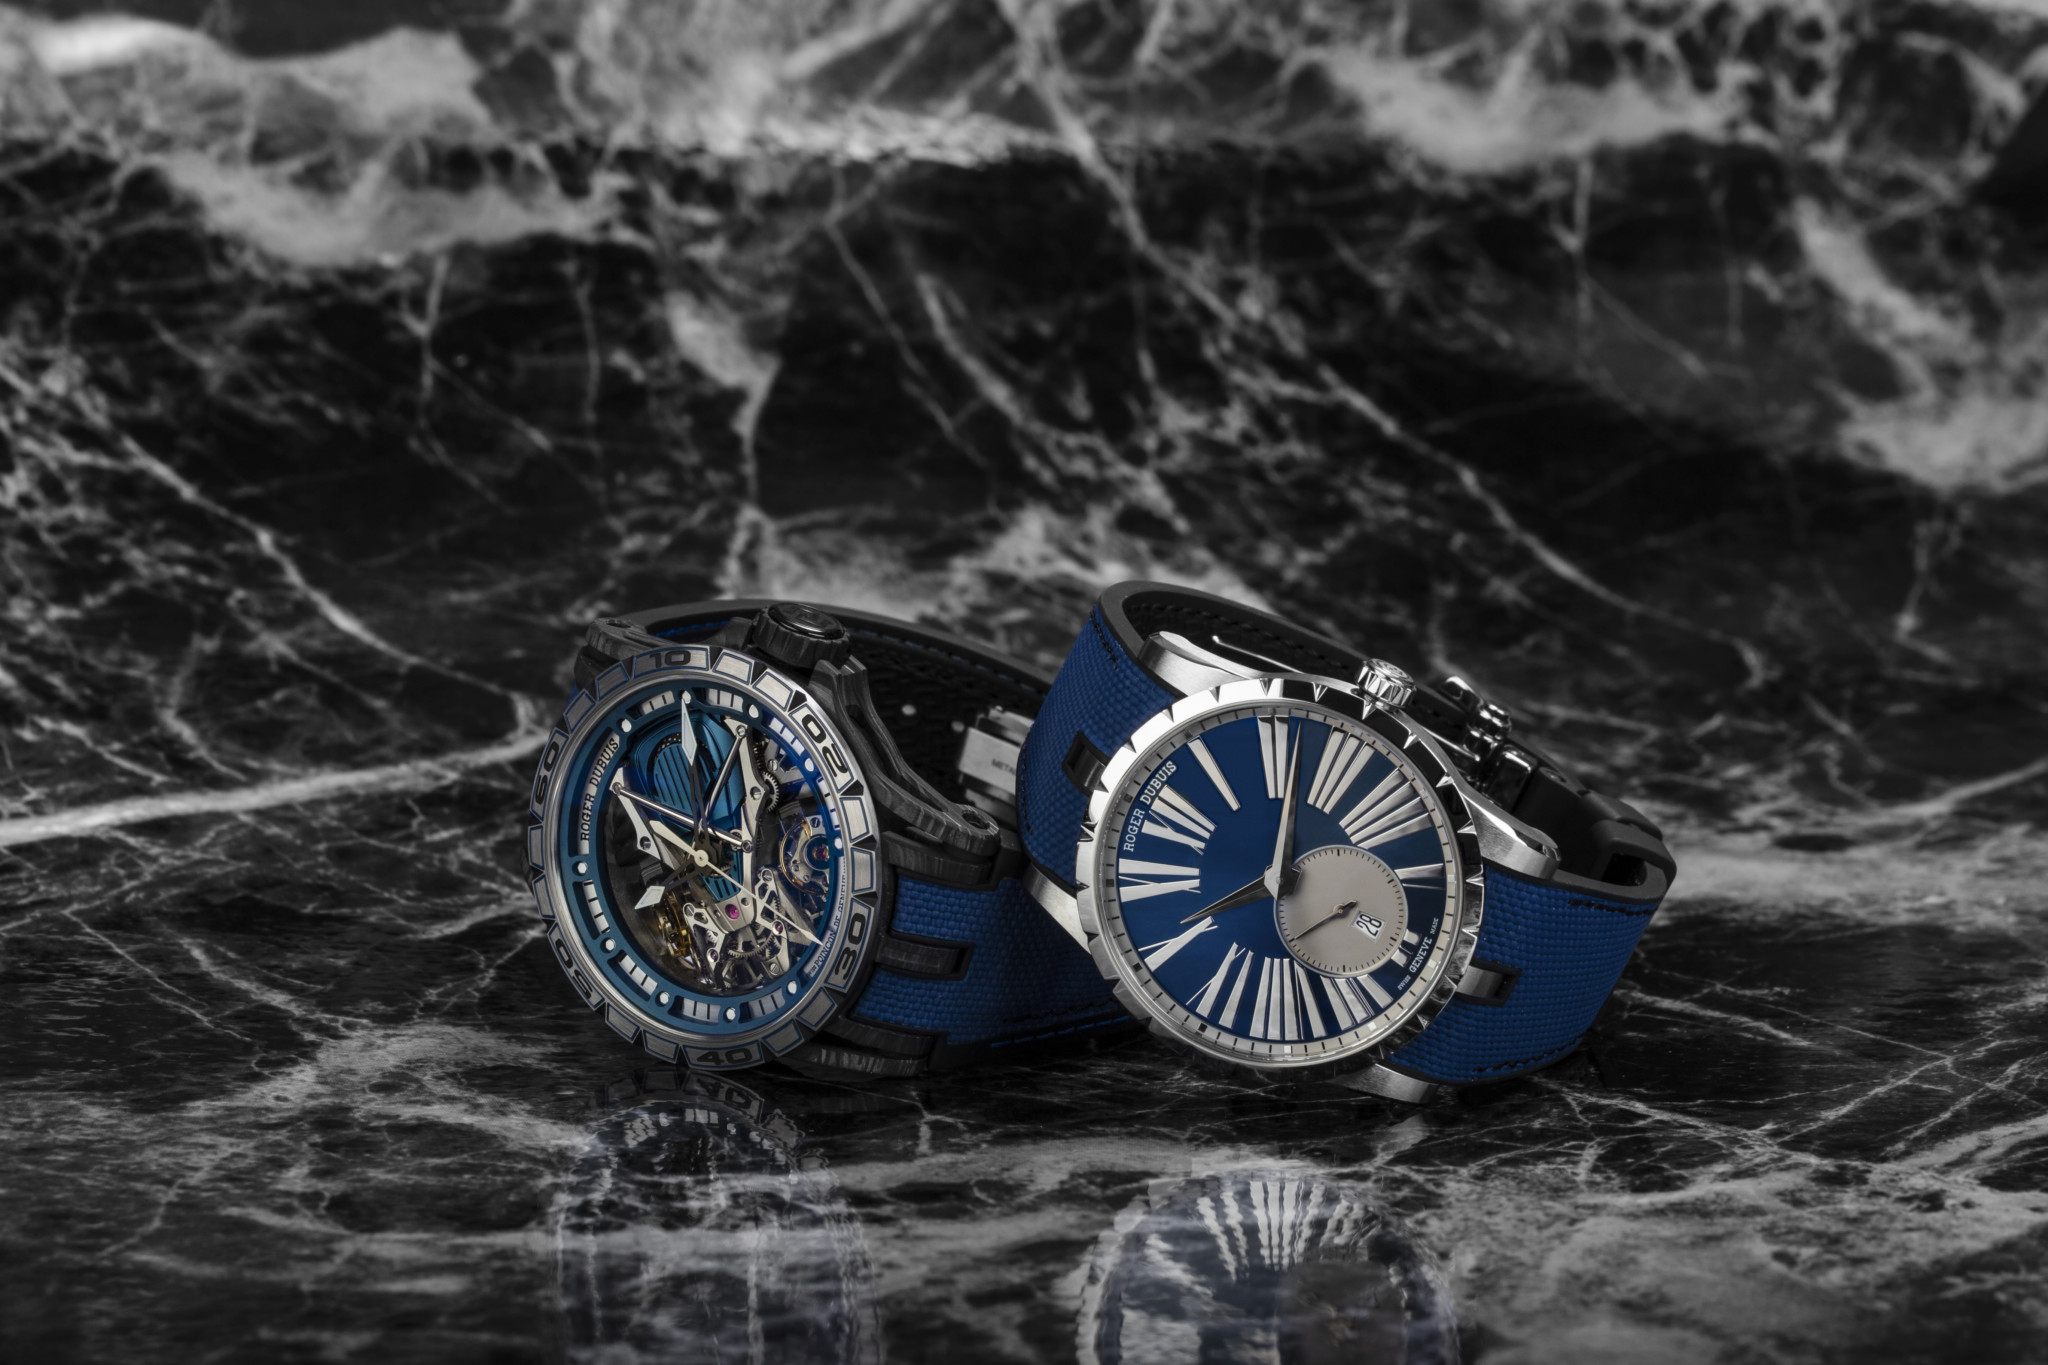 Roger Dubuis_RDDBEX0740_723589_Blue_Social _45mm_and_Roger Dubuis_RDDBEX0730_723299_Skeleton_Social _45mm_00966